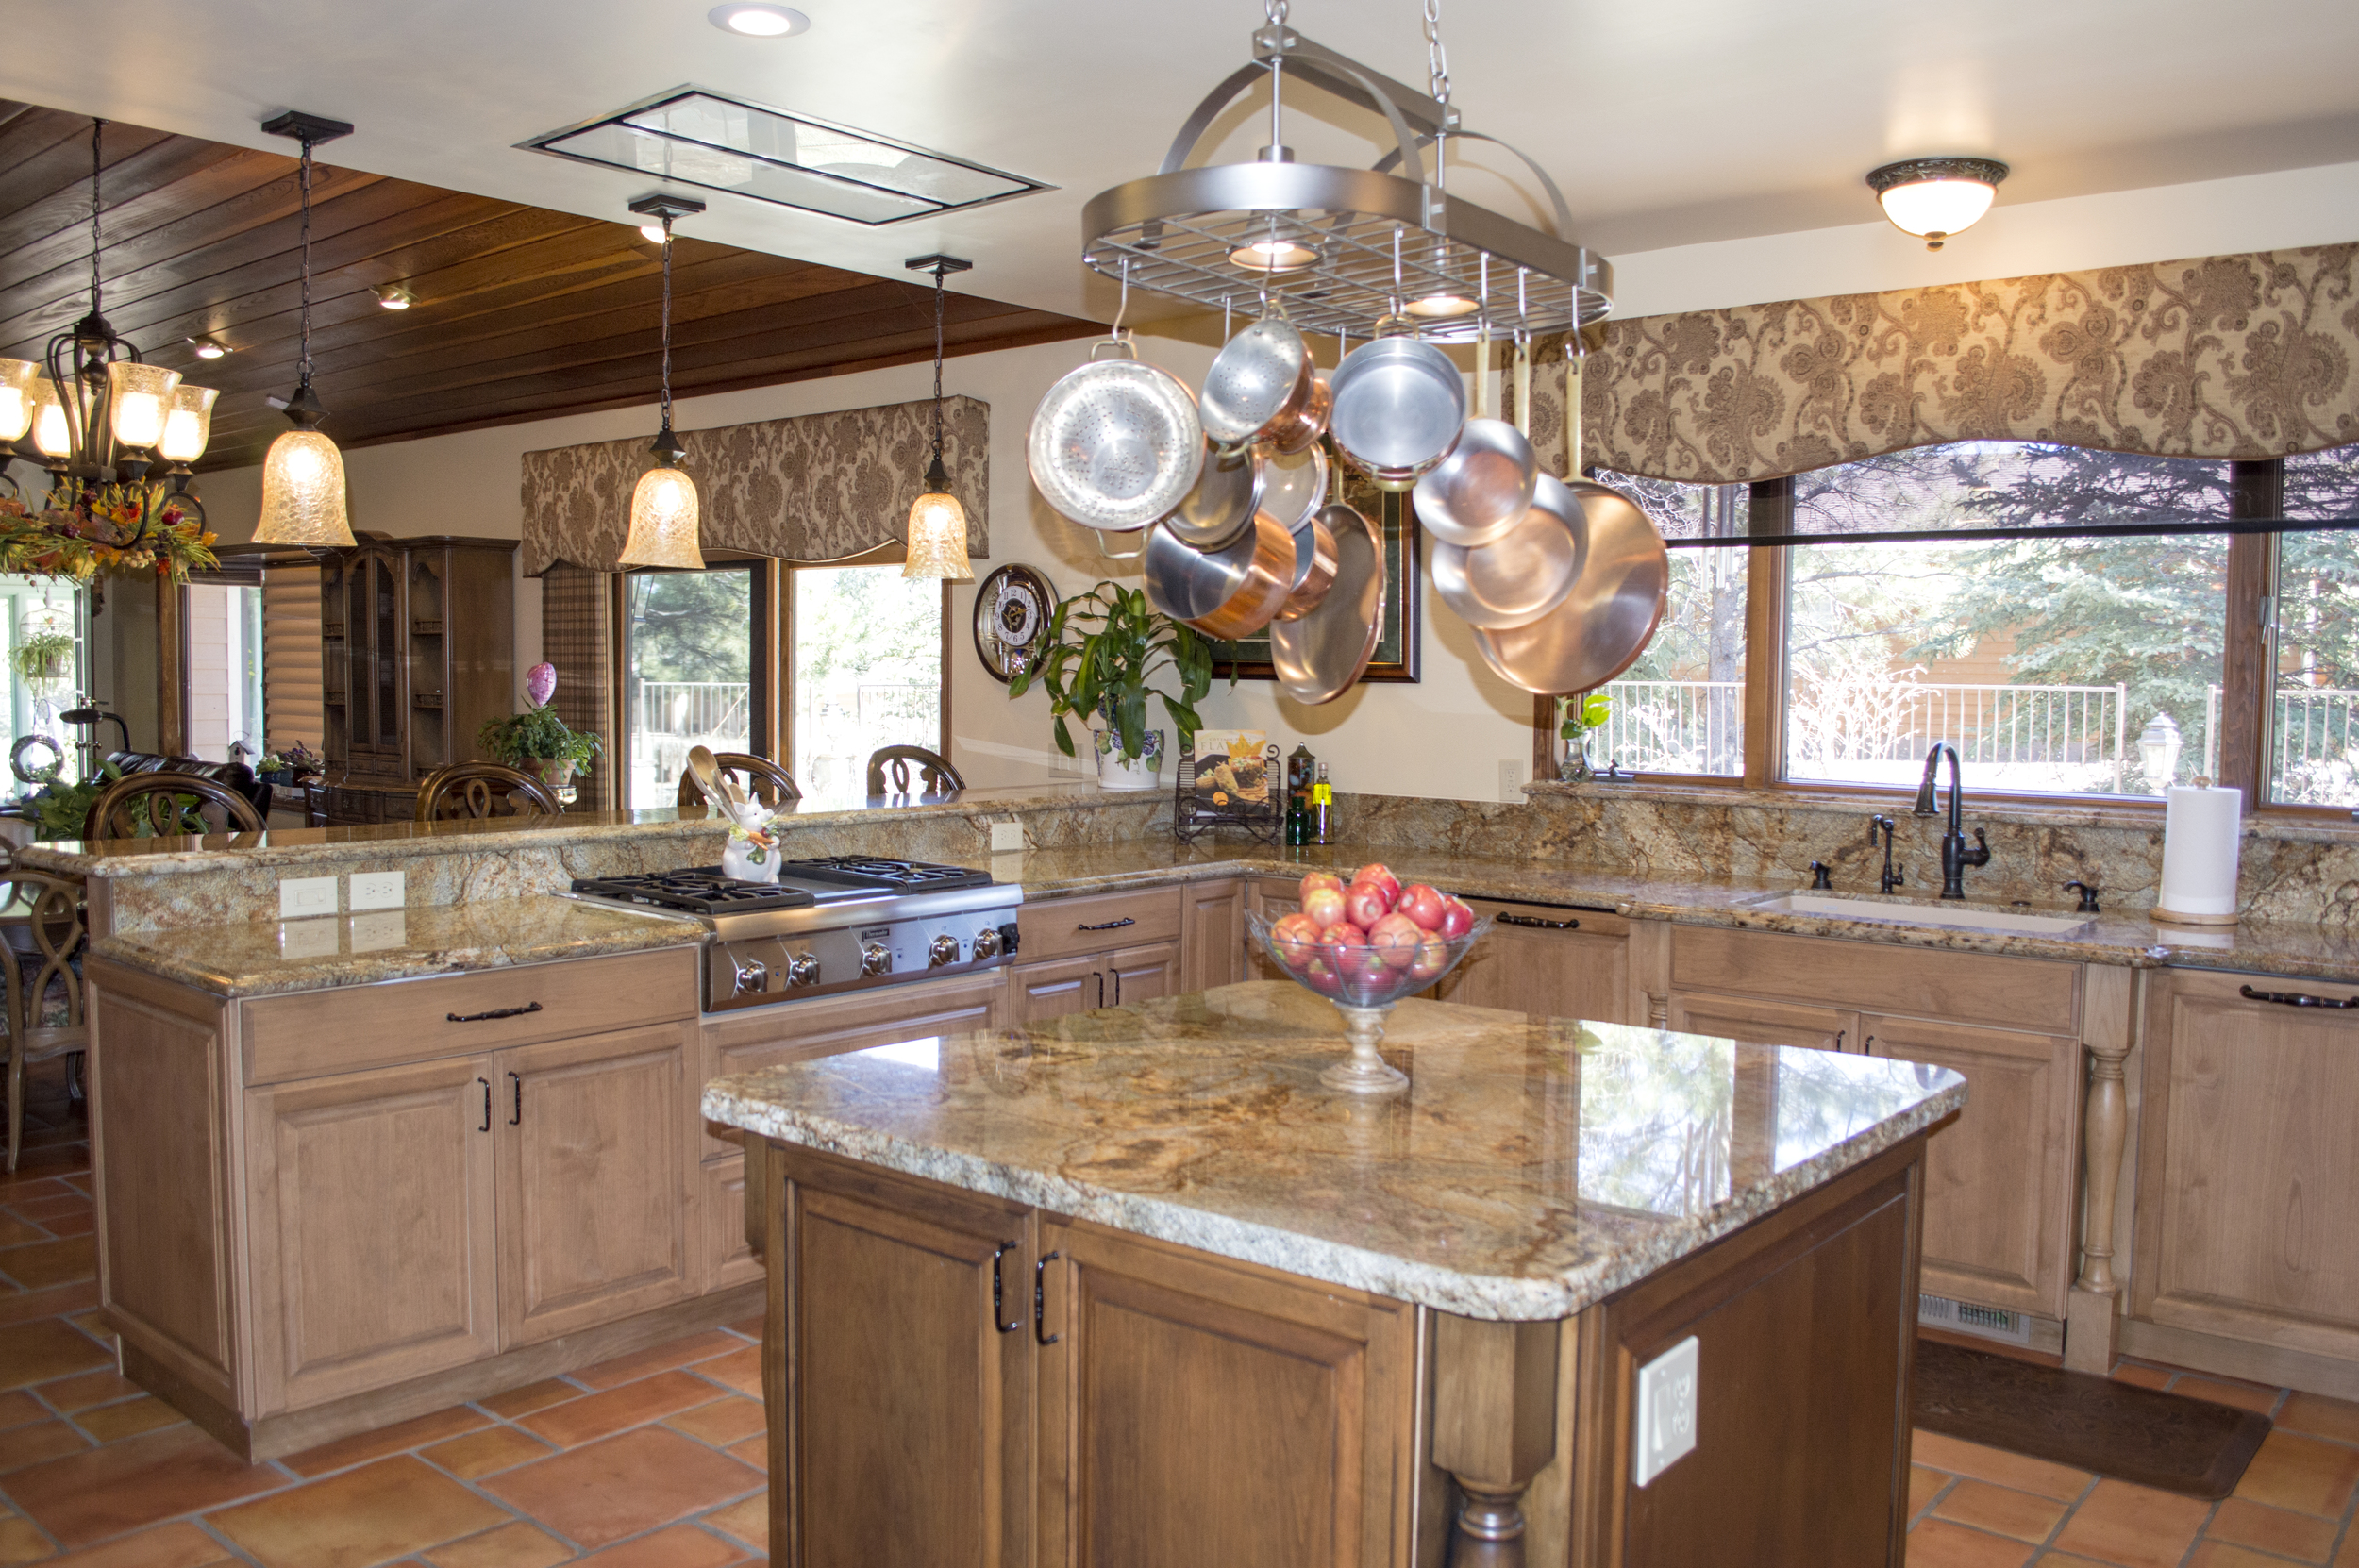 Completed custom kitchen in a residential home near Flagstaff, Arizona.